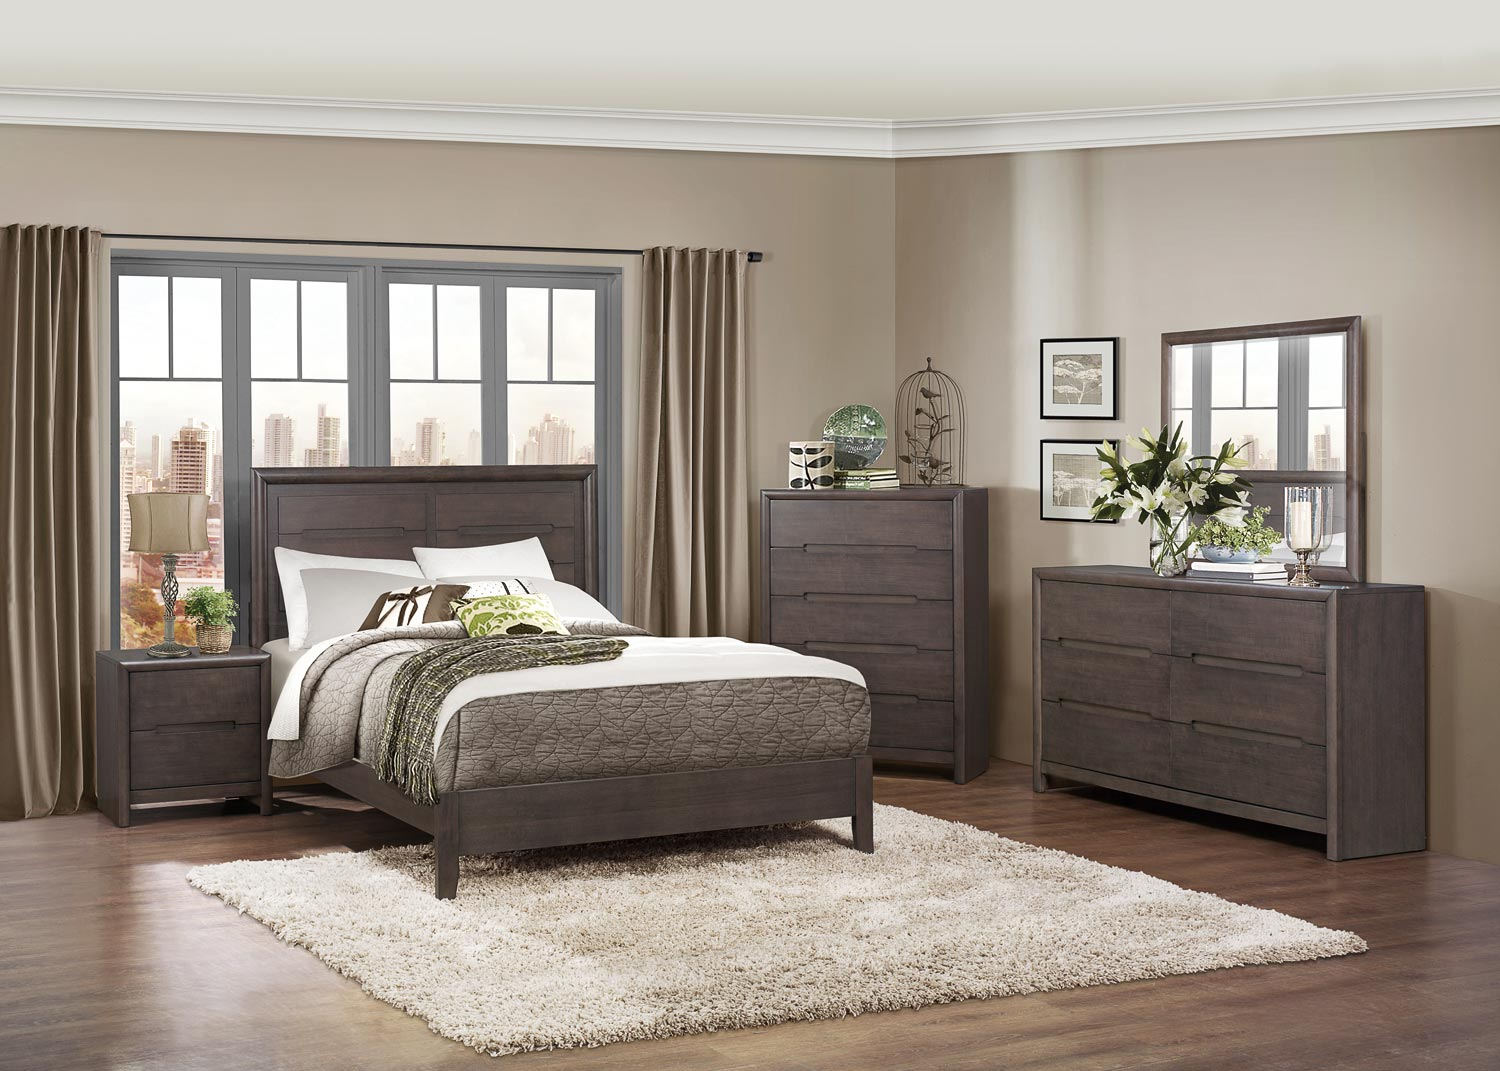 Homelegance Lavinia Bedroom Collection - Weathered Grey 1806-Bed-Set ...